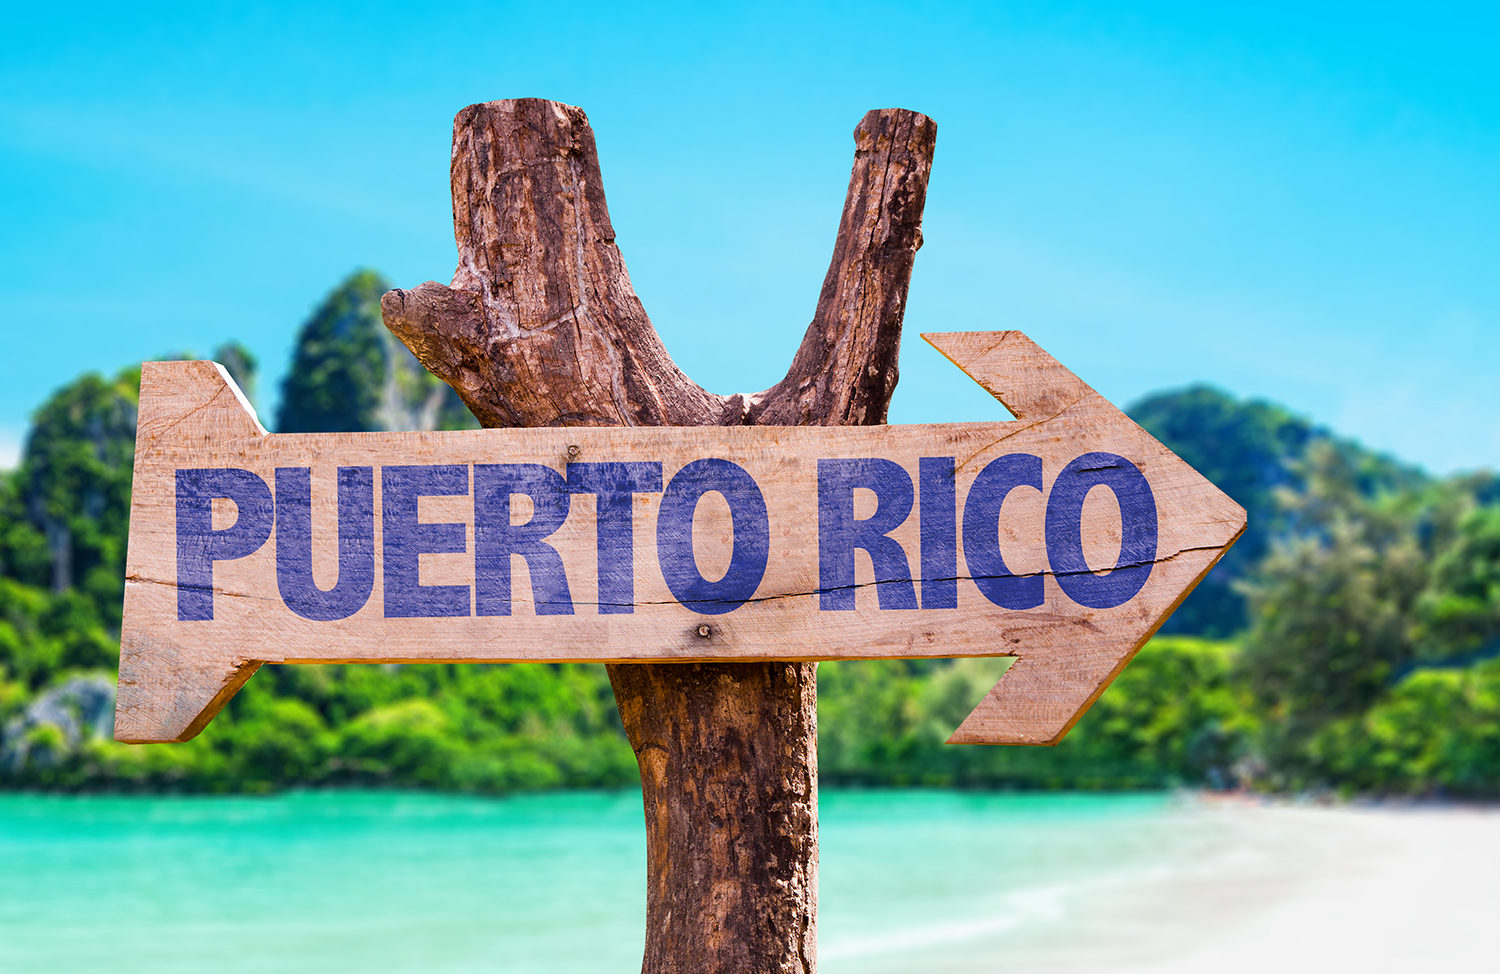 Puerto Rico, Switzerland Are Countries Added To 'Very High' COVID-19 Travel Risk Per The CDC